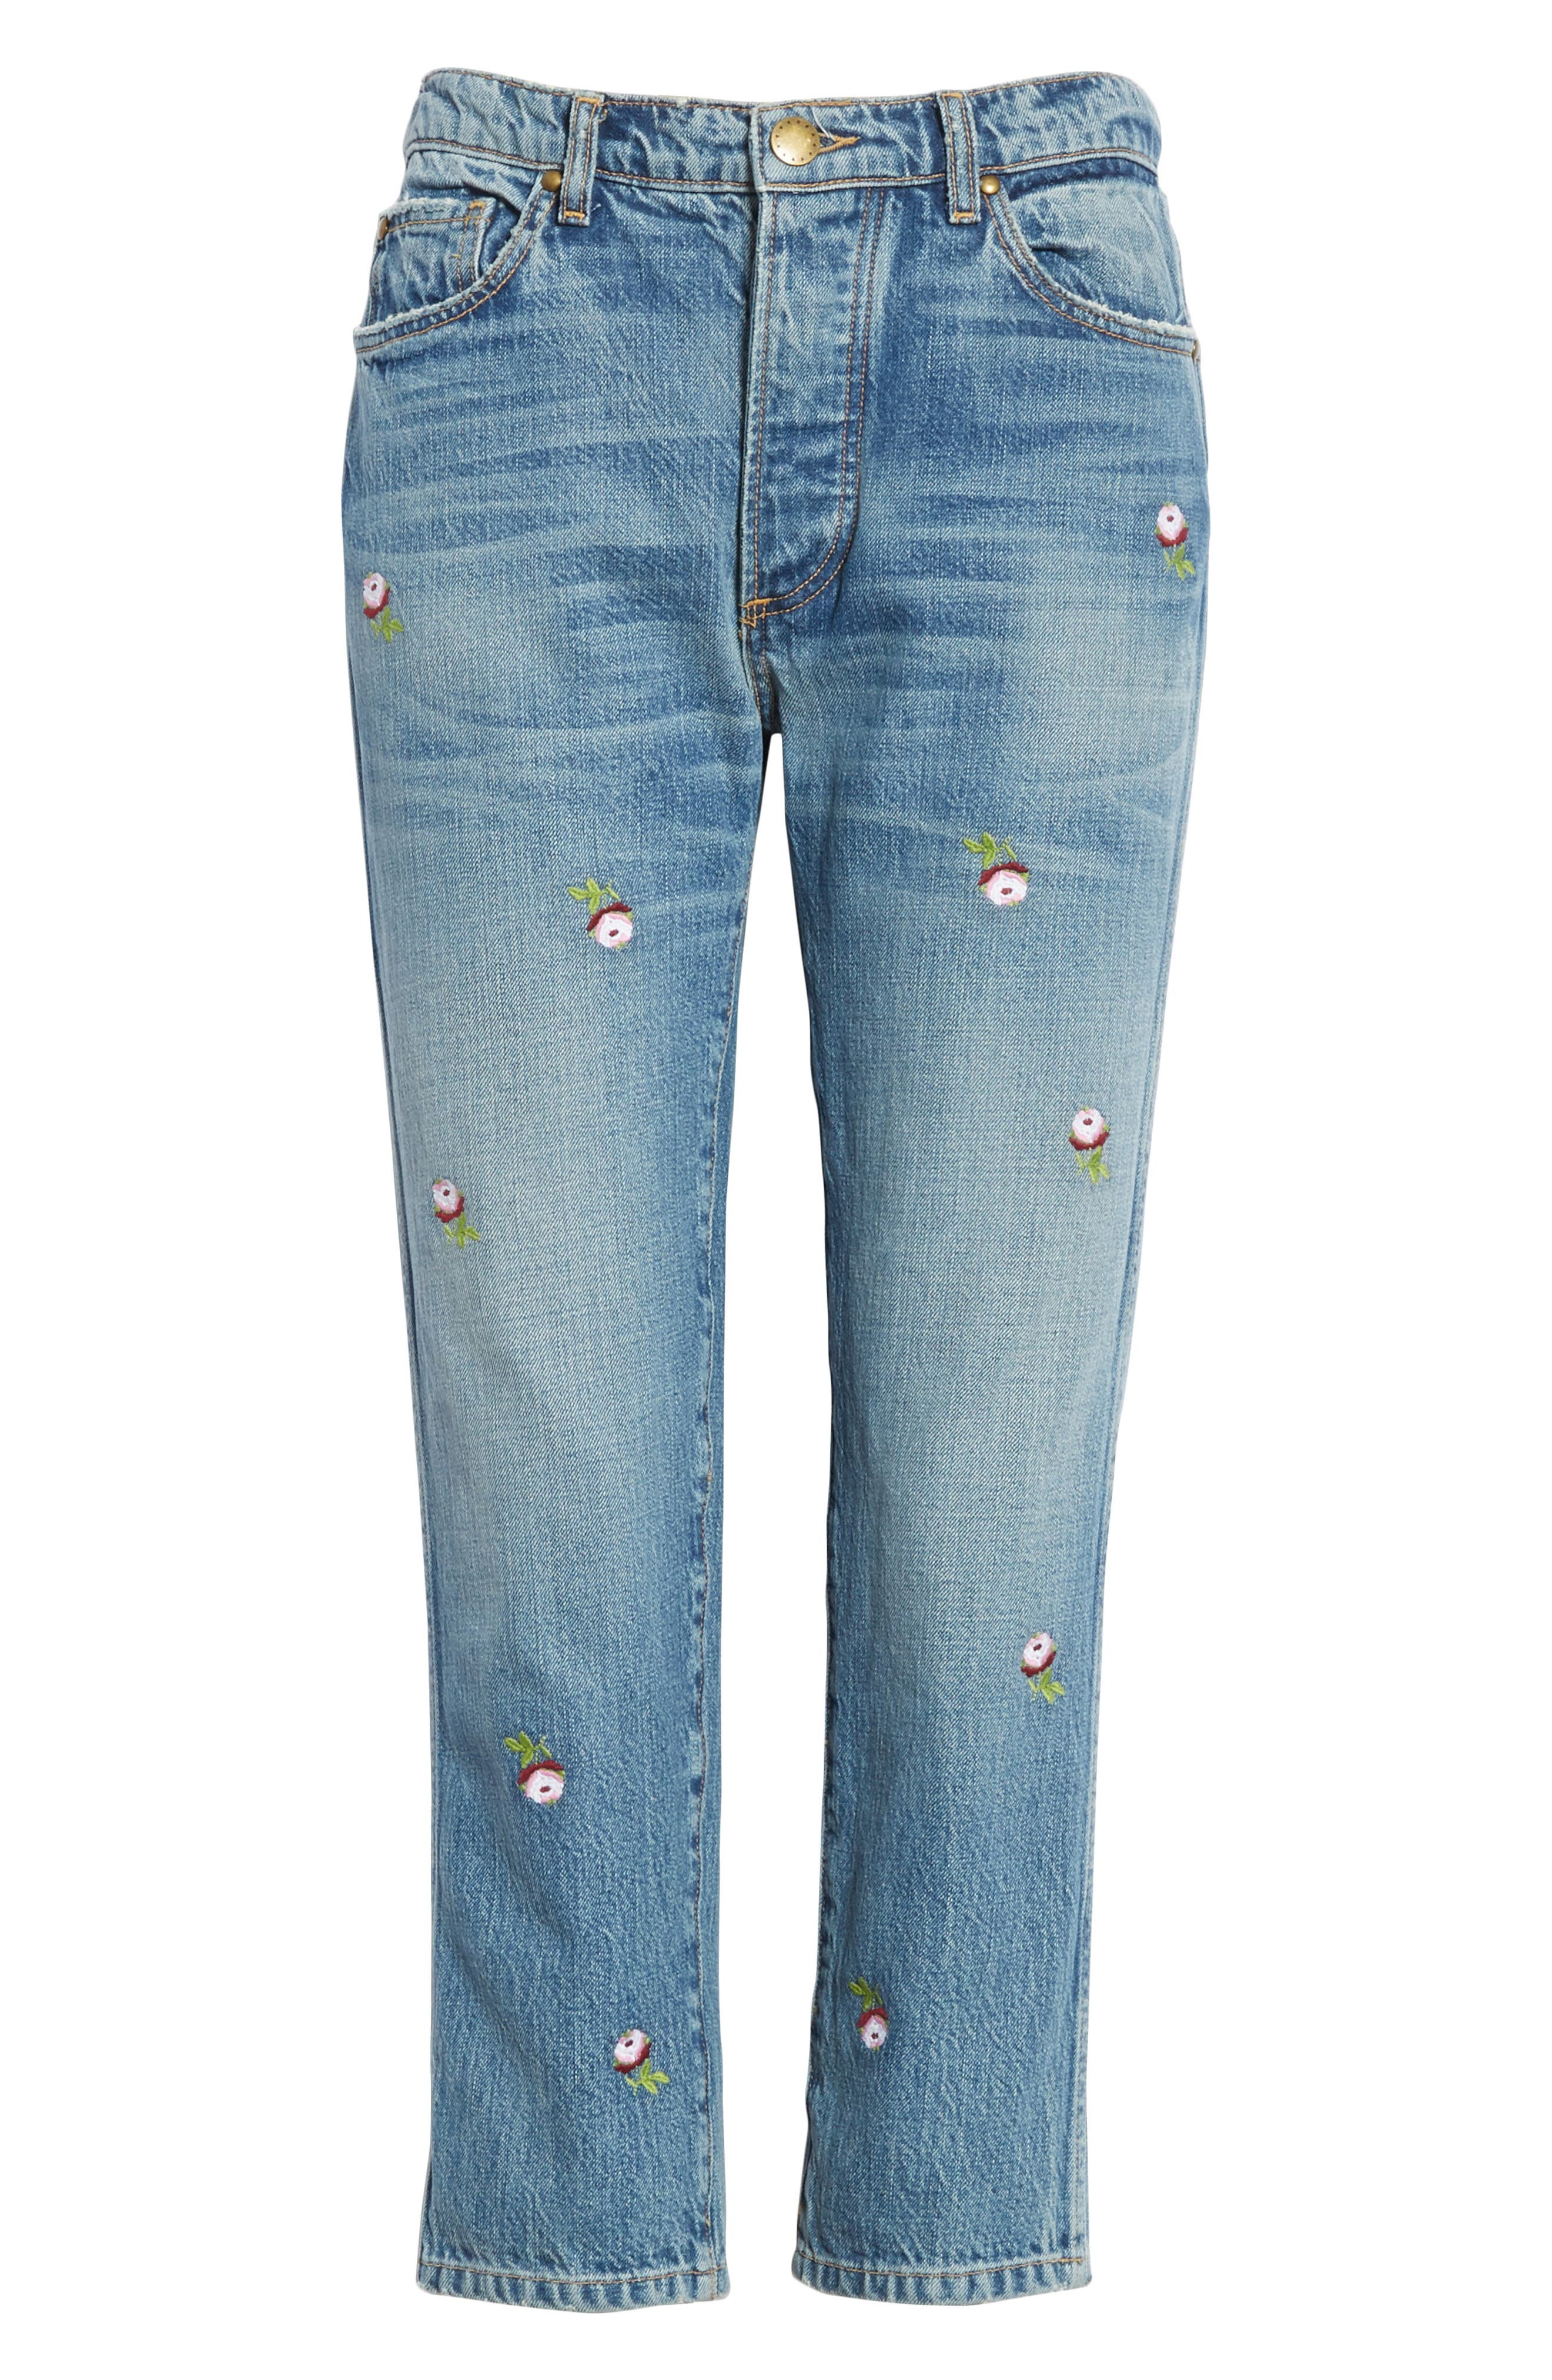 The Rigid Fellow Floral Embroidered Jeans,                             Alternate thumbnail 6, color,                             PRAIRIE WASH W/ ROSETTE